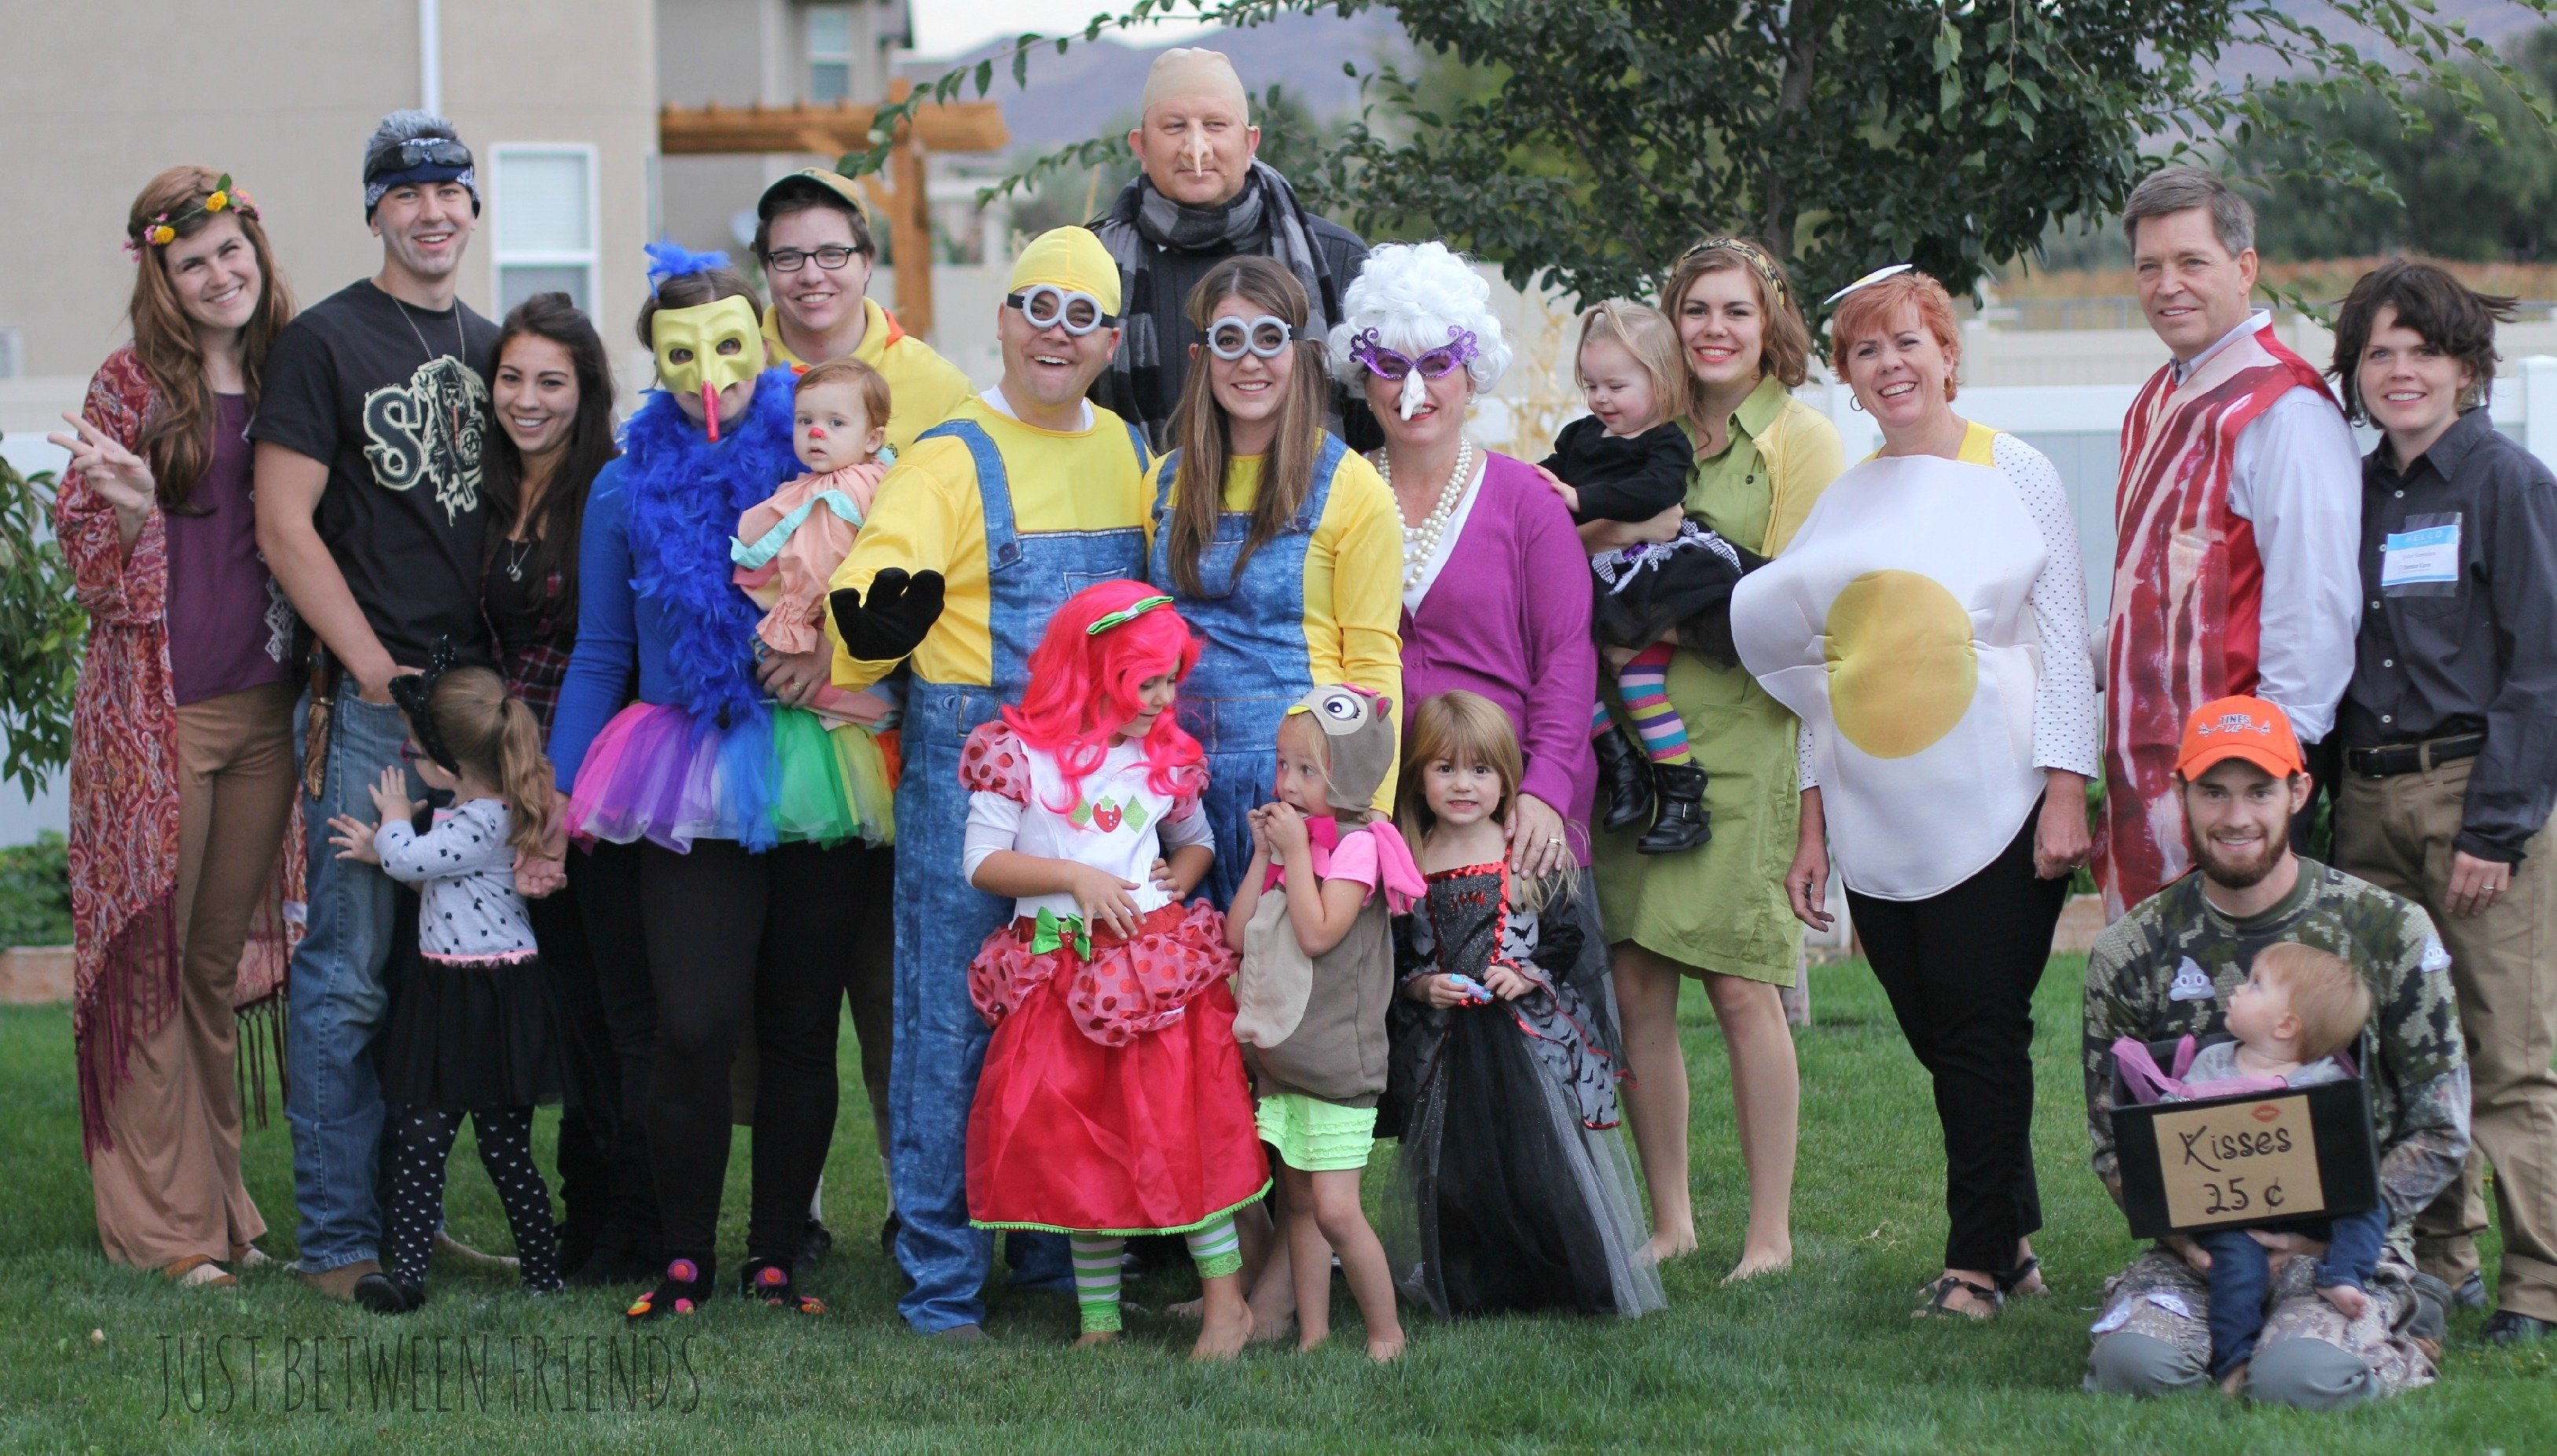 10 Perfect Good Costume Ideas For Groups halloween costume ideas just between friends 2020